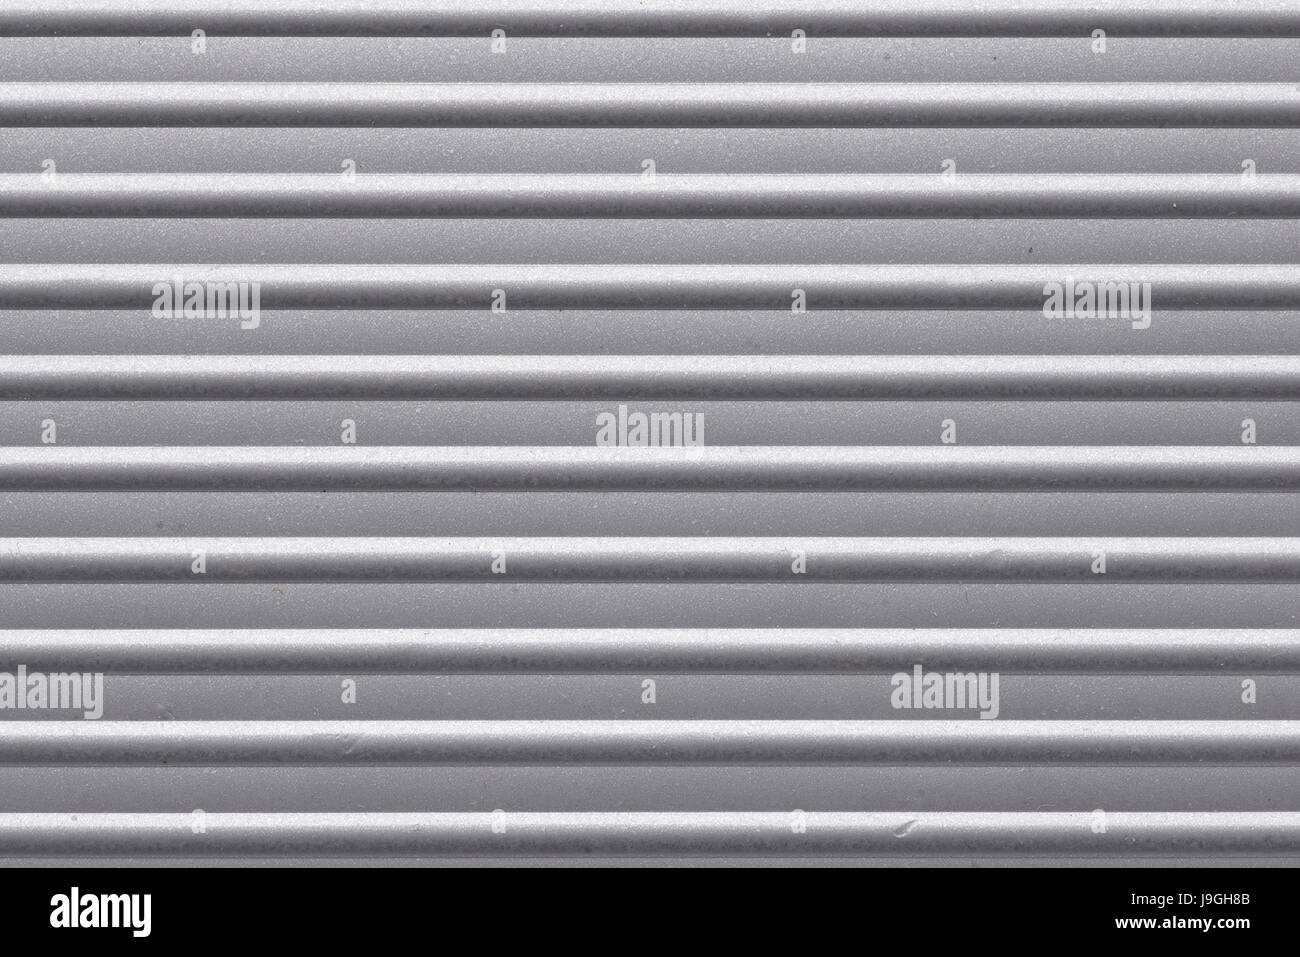 detailed corrugated metallic surface, horizontal orientation - Stock Image